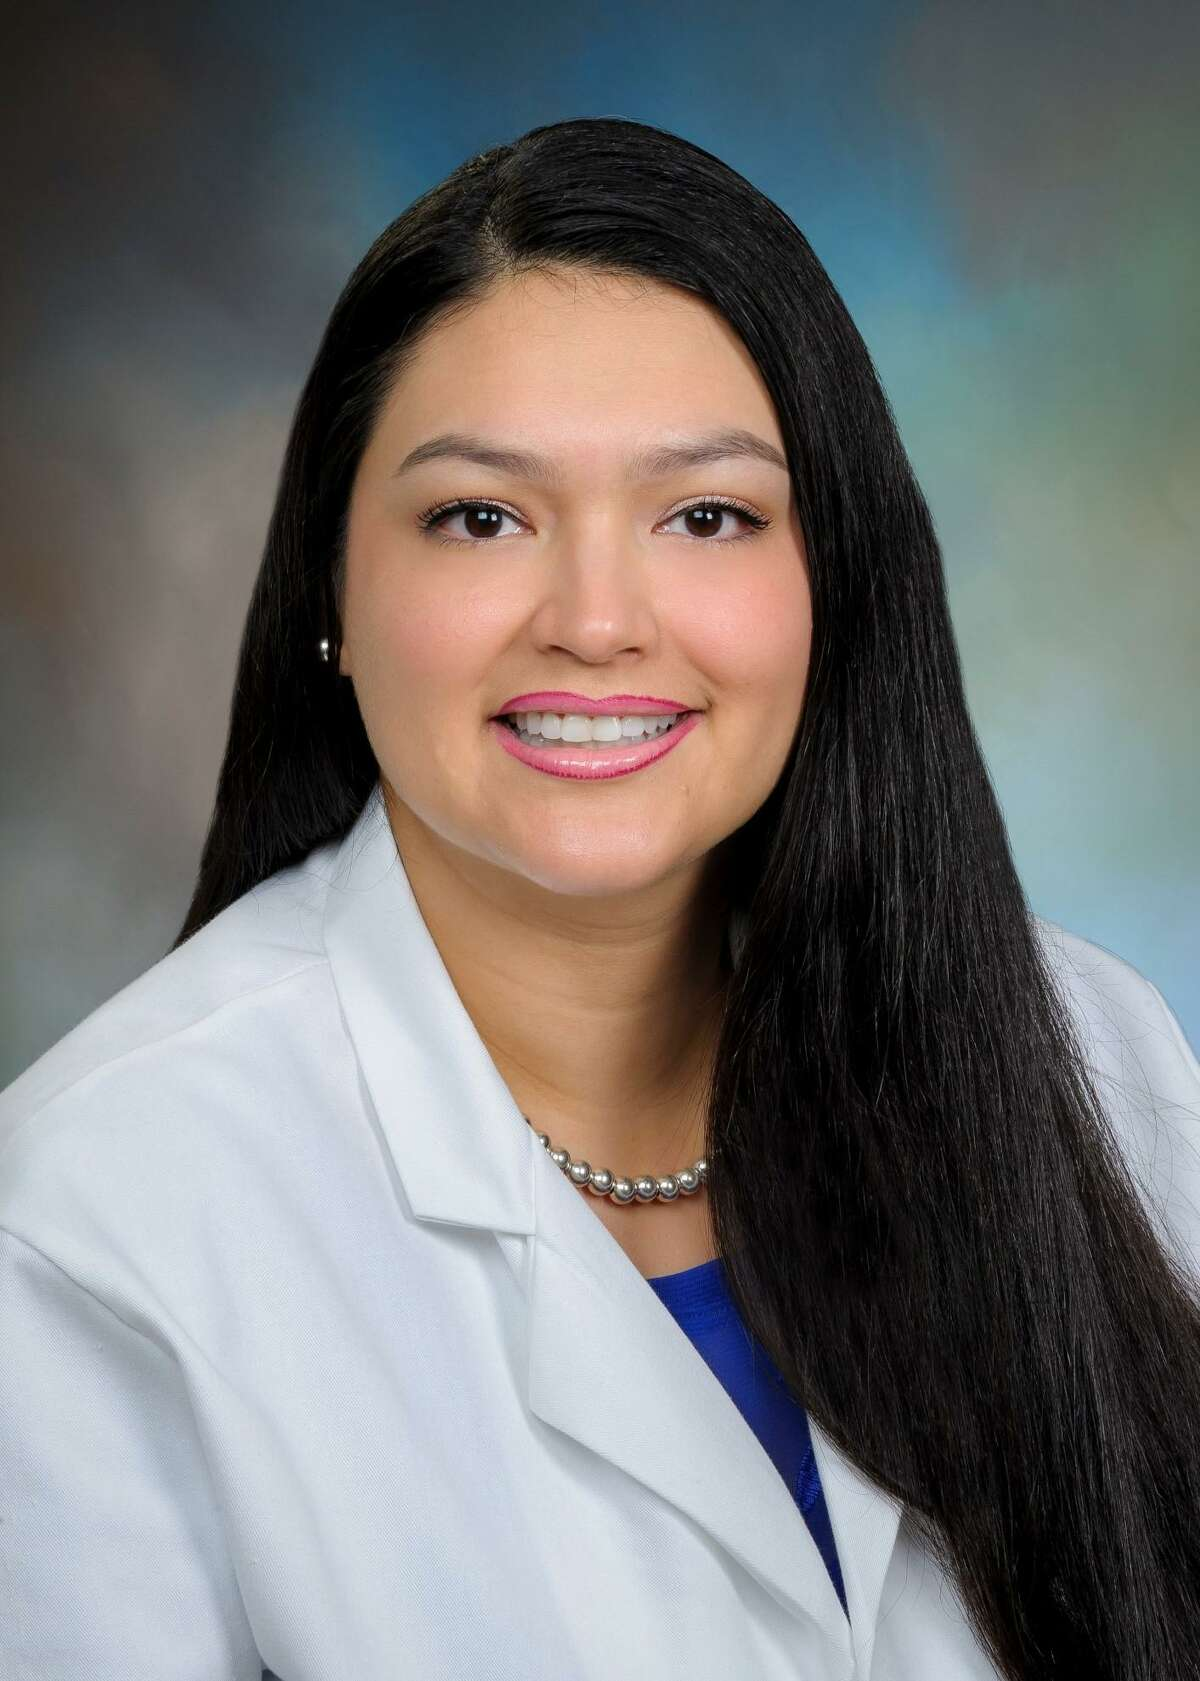 Family nurse practitioner Lauren Perez says cancer patients will always hold the first place in her heart in the medical profession.